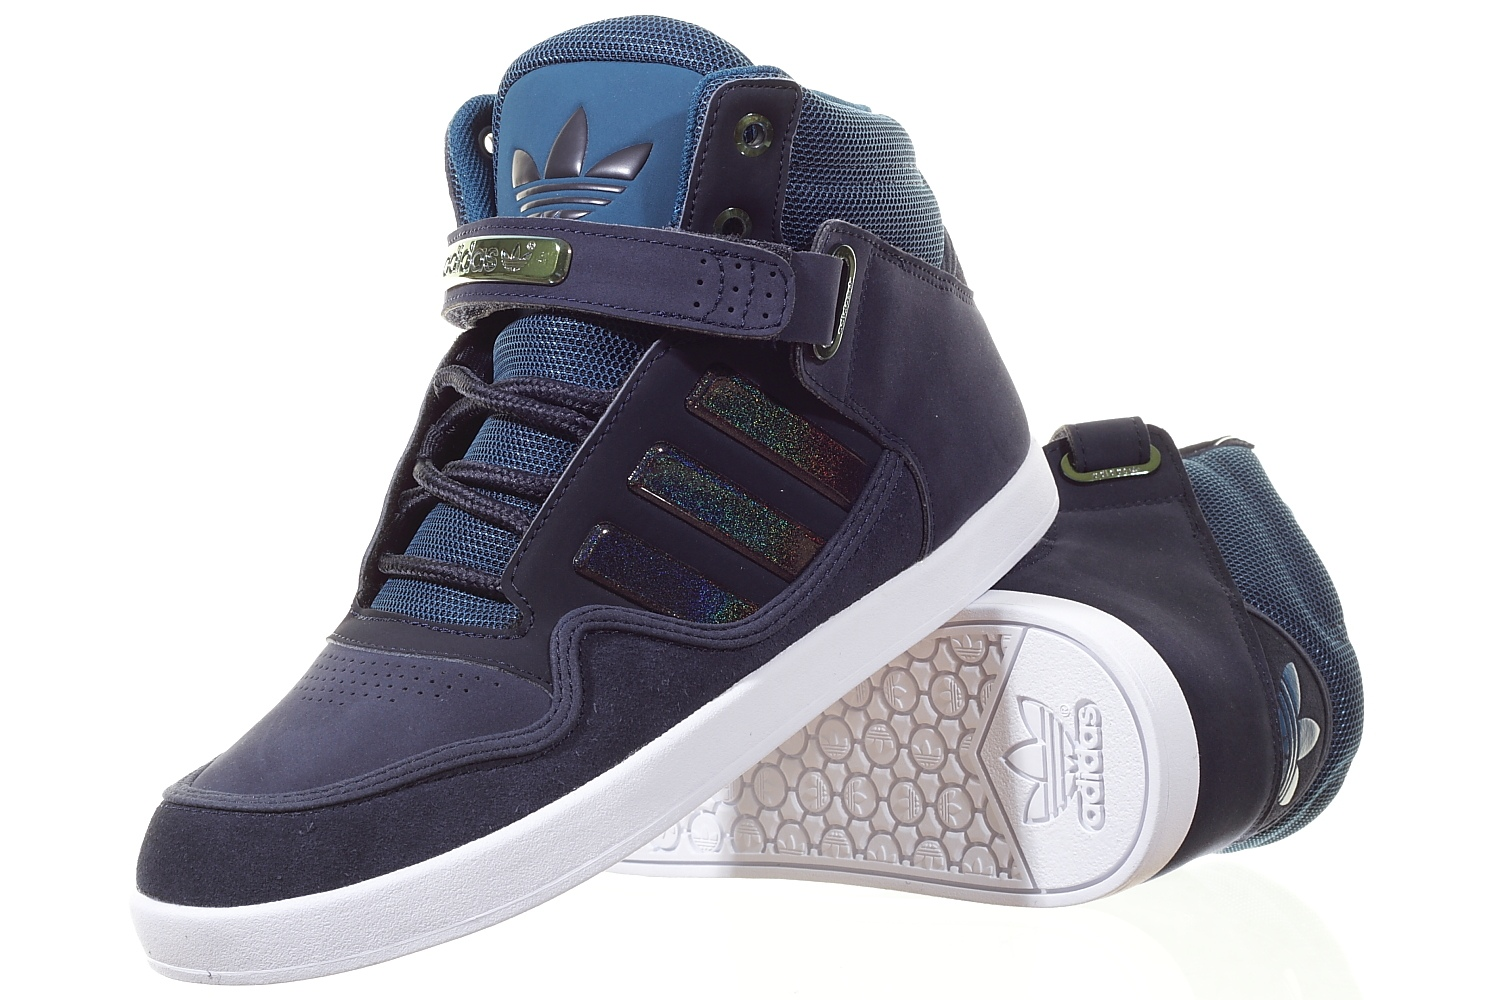 New Mens Adidas Ar 2.0 Originals Navy Hi-Top Fashion Sneakers Trainers Boots | eBay